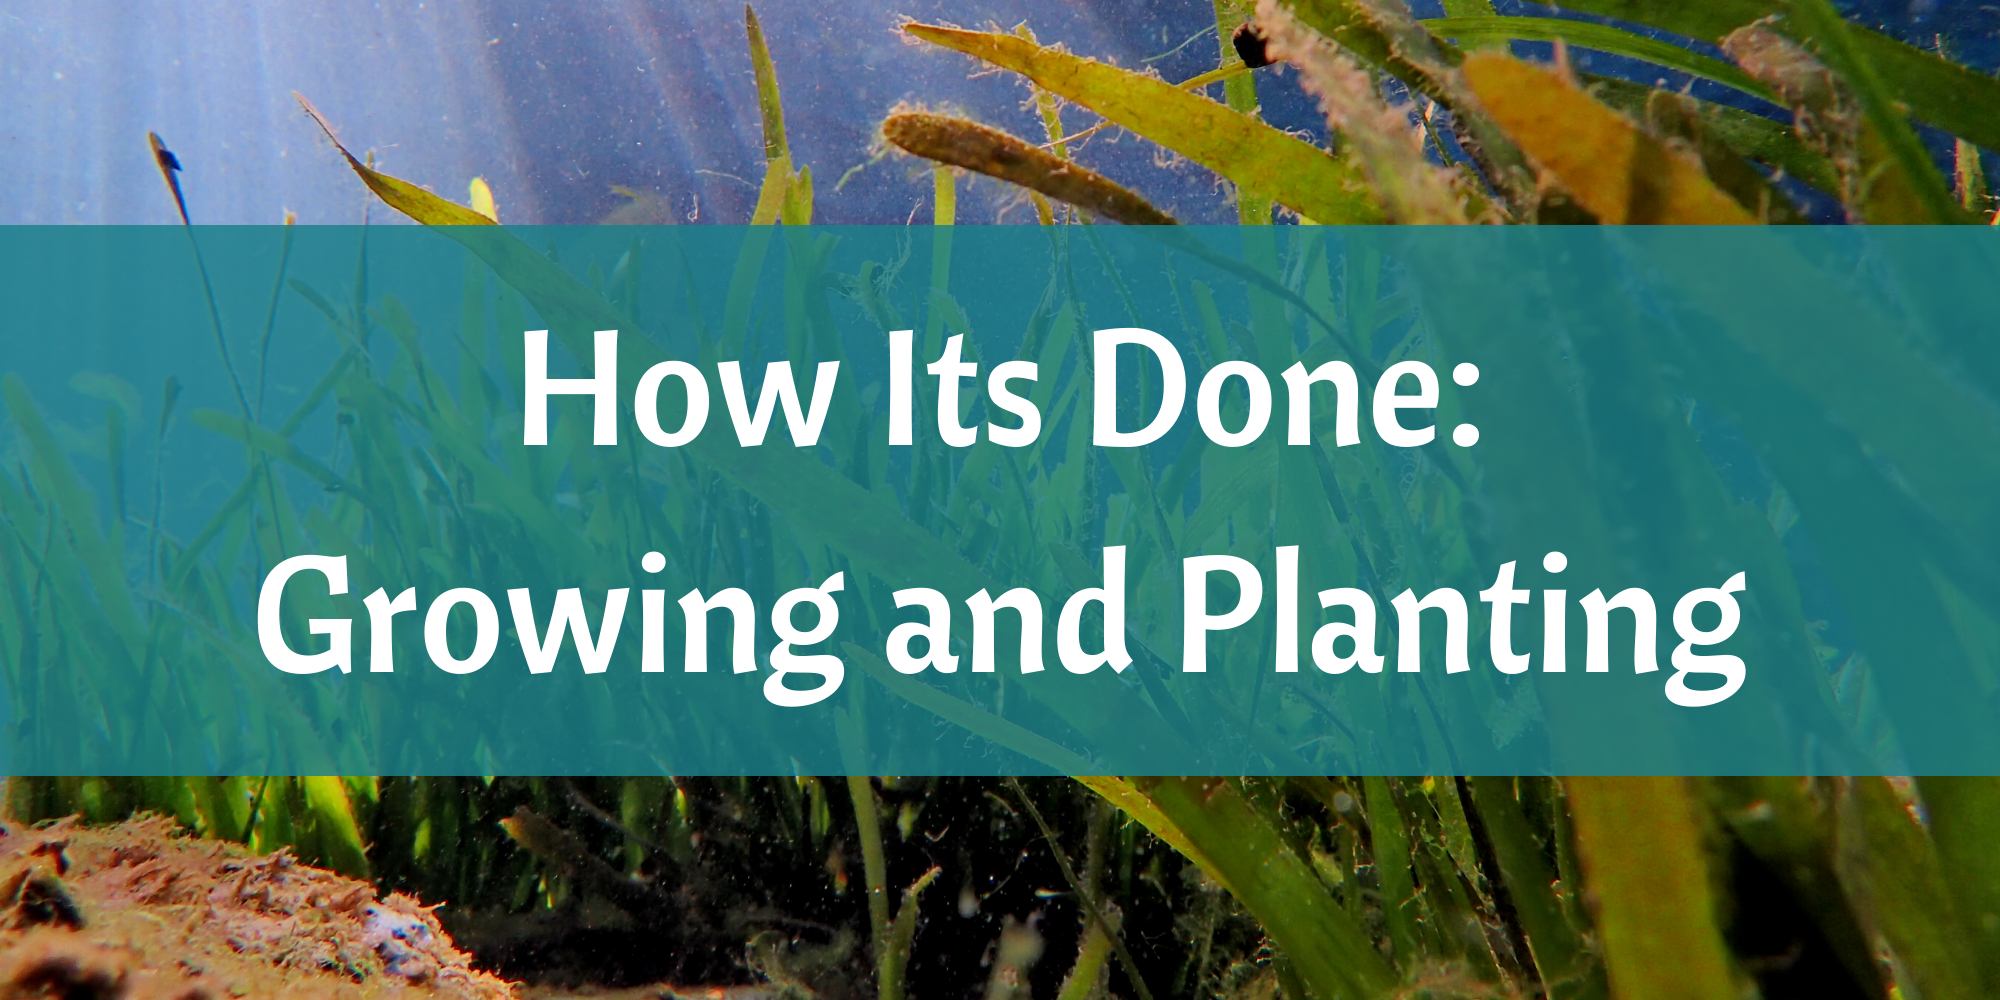 Growing and Planting Eelgrass